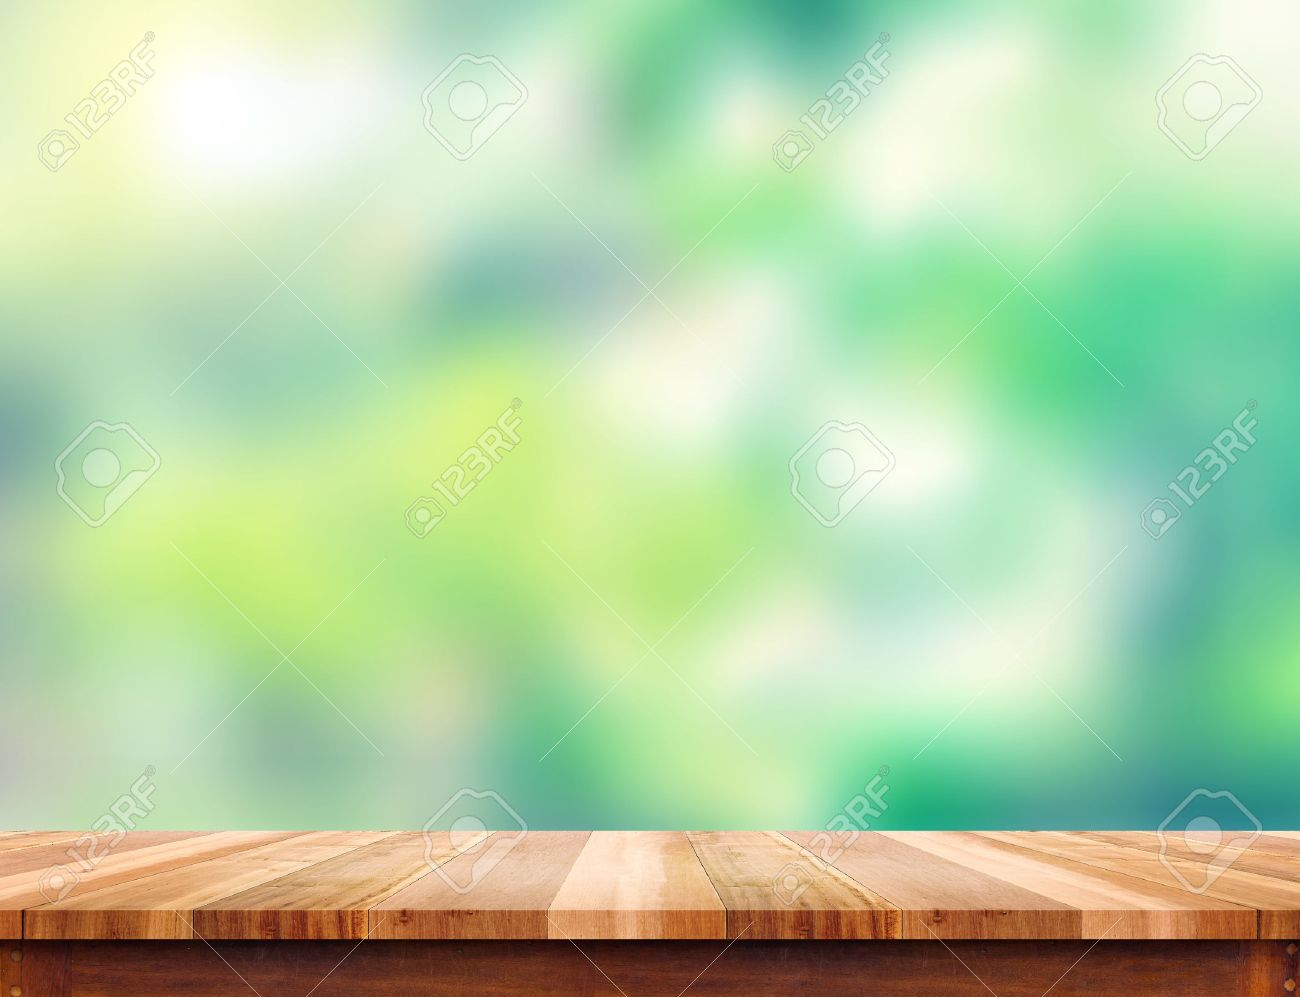 empty plank brown wood table top with blur green tree background